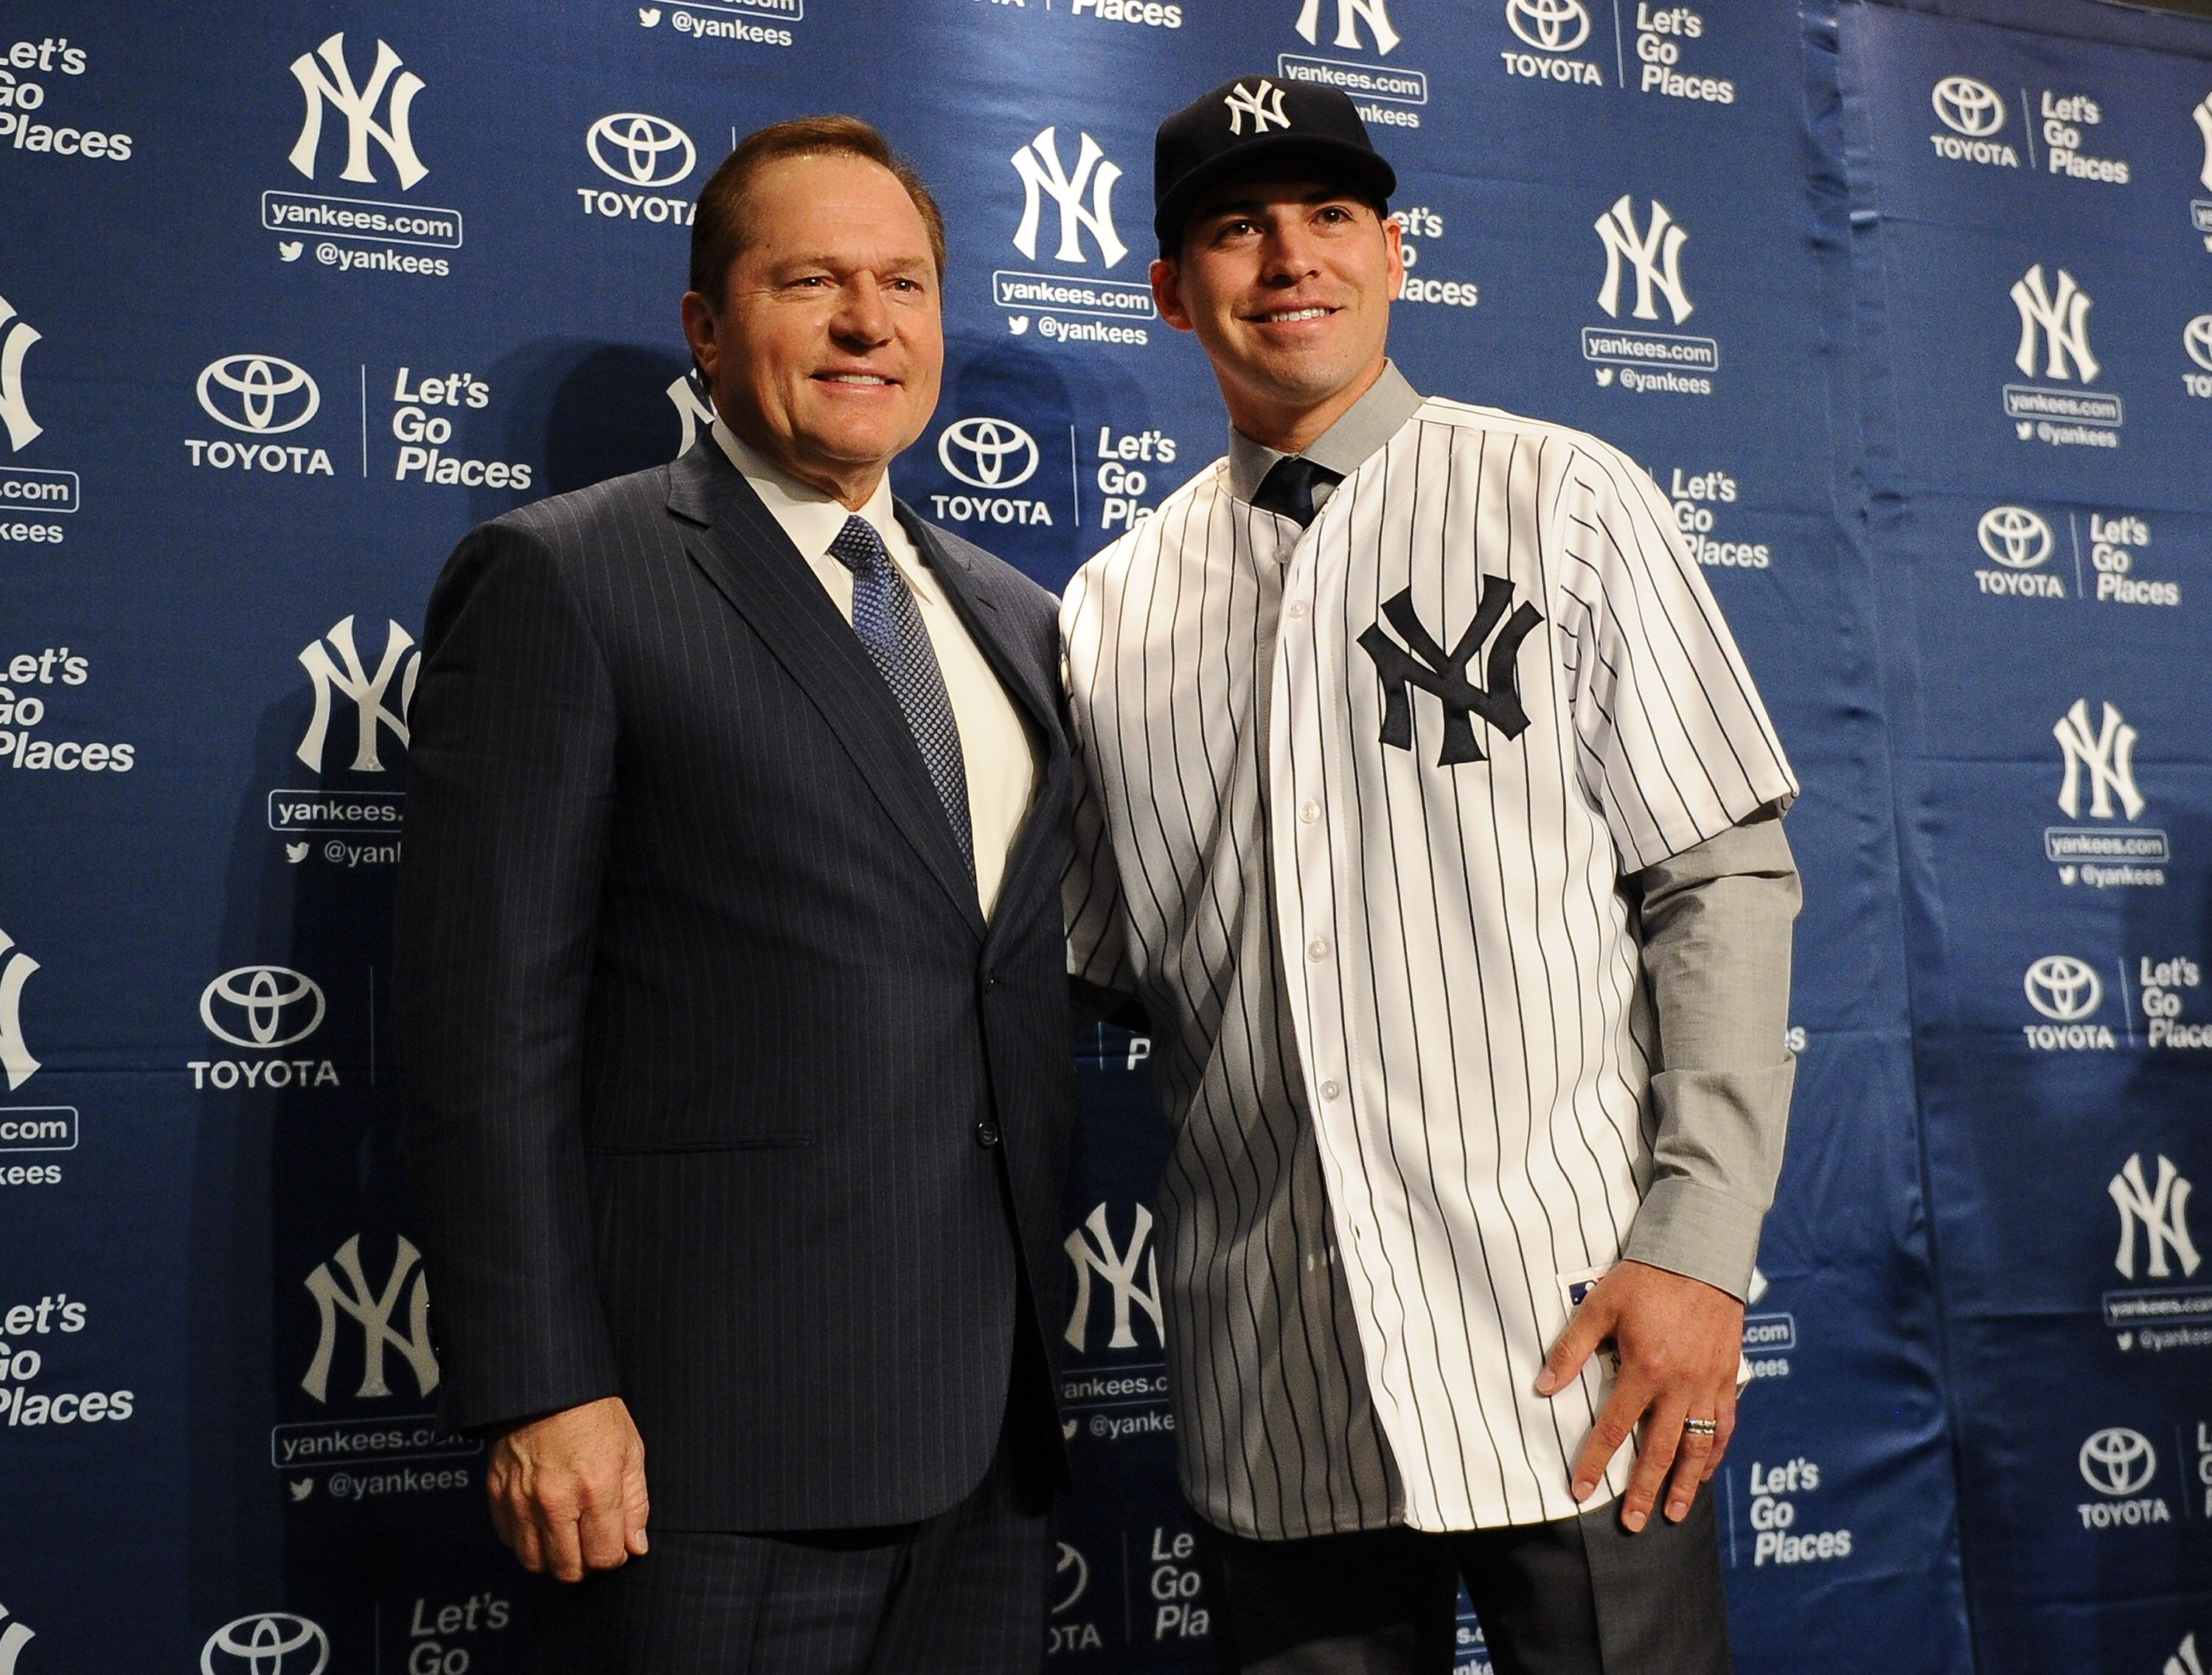 456051685-new-york-yankees-introduce-jacoby-ellsbury.jpg